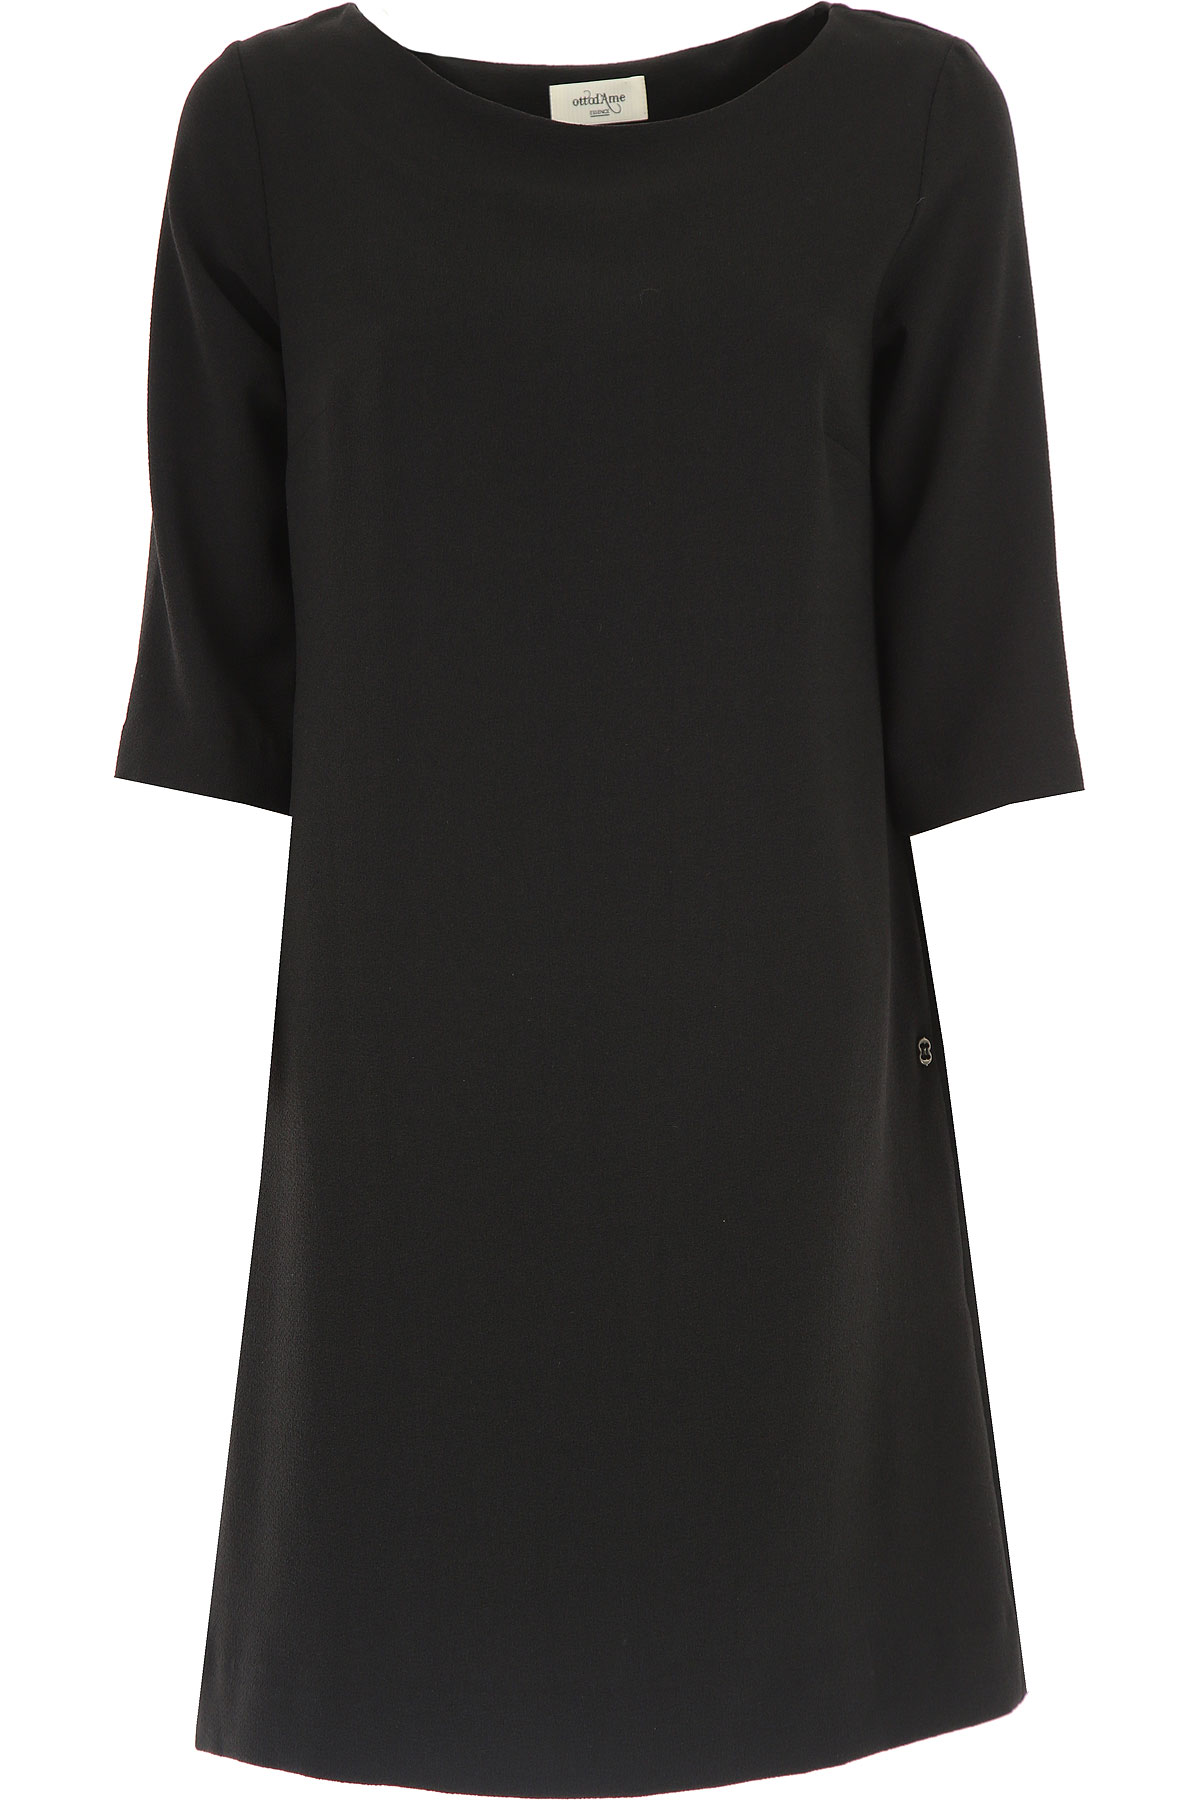 Image of Ottodame Dress for Women, Evening Cocktail Party On Sale, Black, polyester, 2017, US 6 - I 42 - GB 10 - F 38 US 8 - I 44 - GB 12 - F 40 US 10 - I 46 - GB 14 - F 42